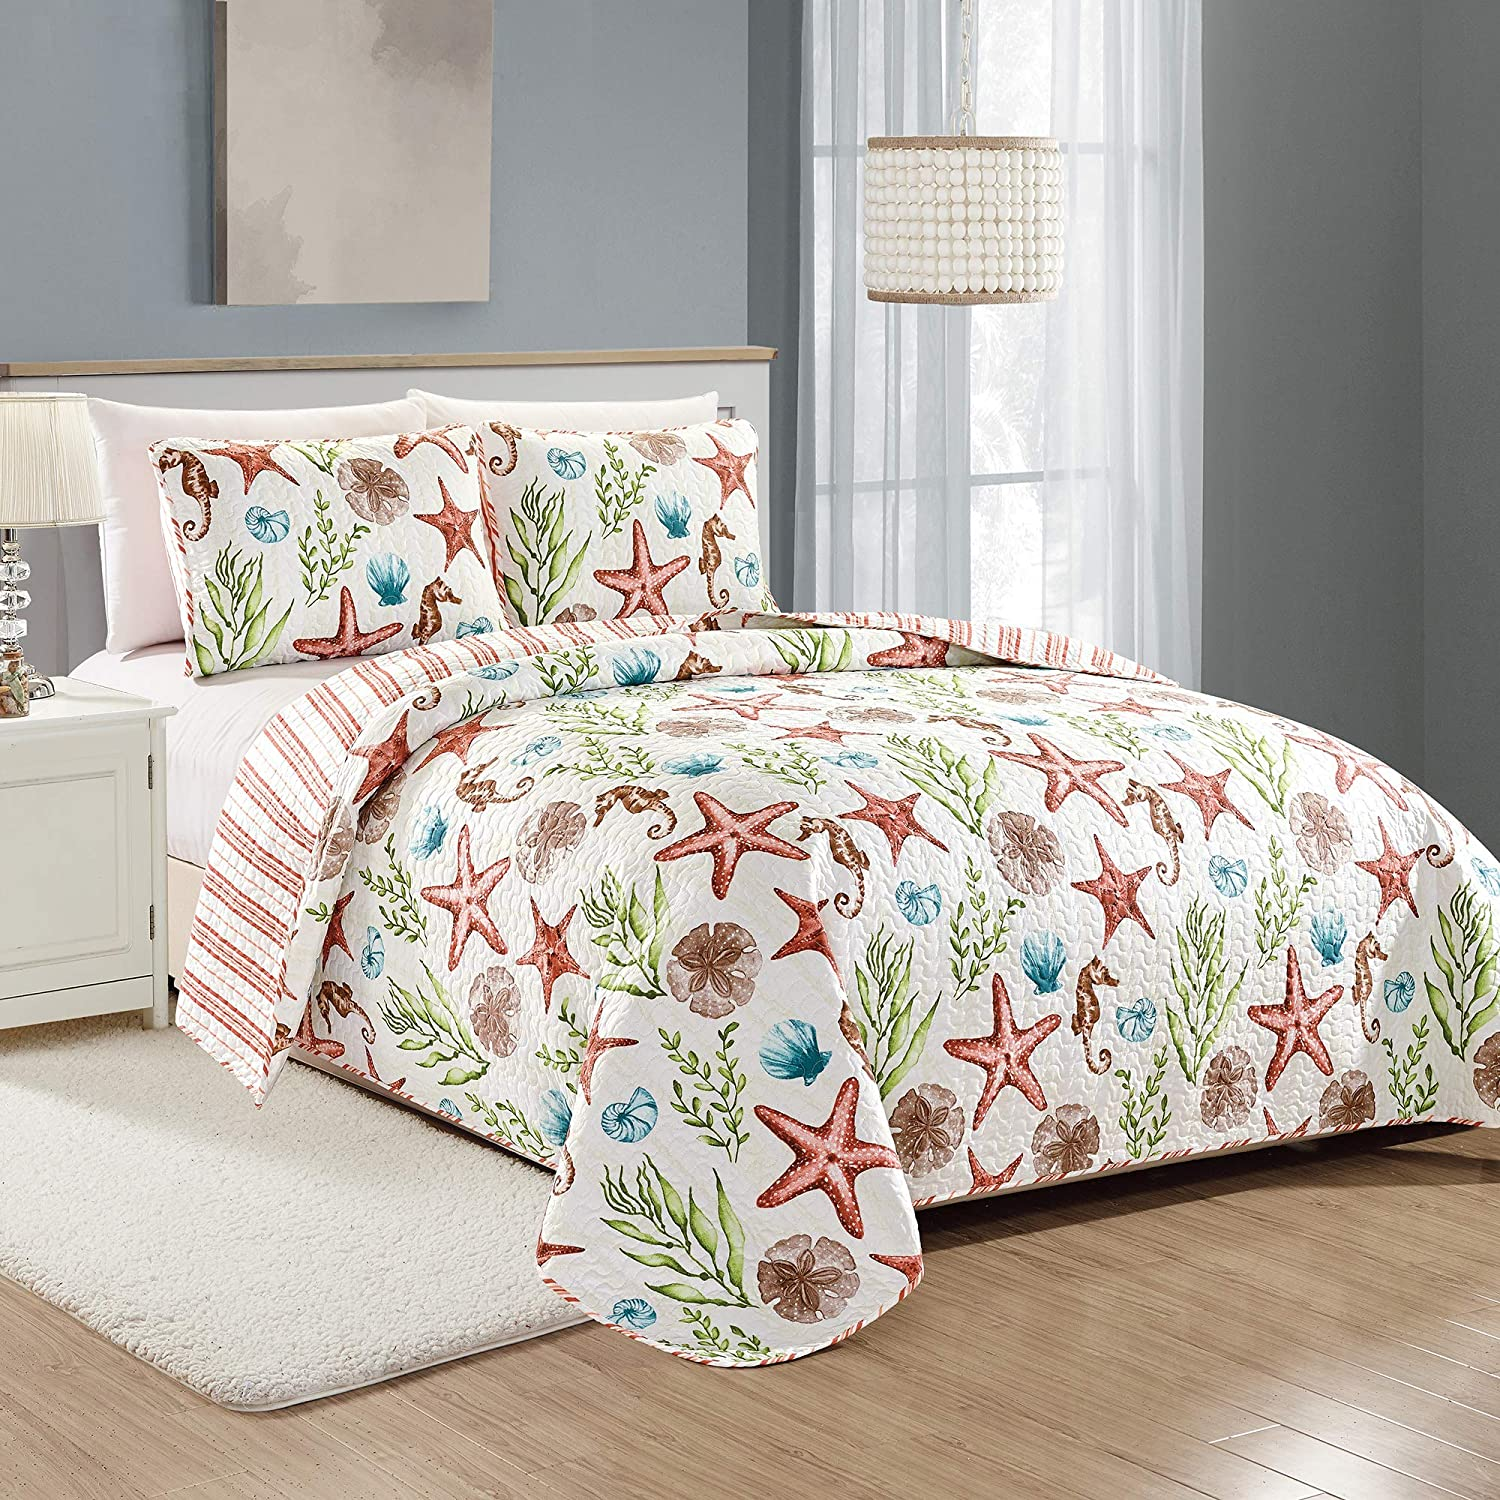 Great Bay Home Castaway Coastal Collection 3 Piece Quilt Set with Shams. Reversible Beach Theme Bedspread Coverlet. Machine Washable. (Twin, Multi)